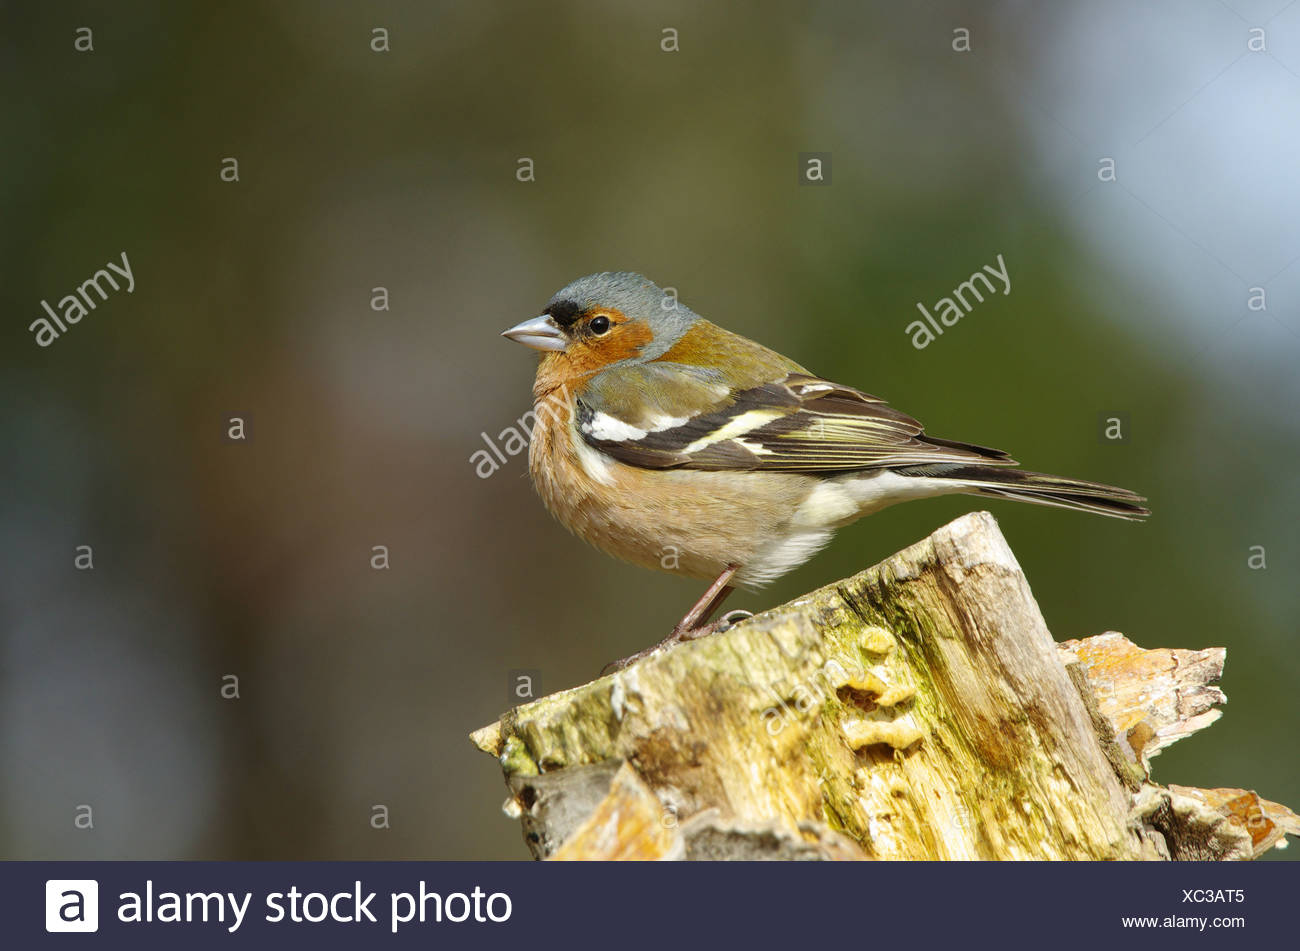 Europe, Sweden, Hamra, animals, bird, passerine bird, finch, ghaffinch, Fringilla coelebs, stump - Stock Image